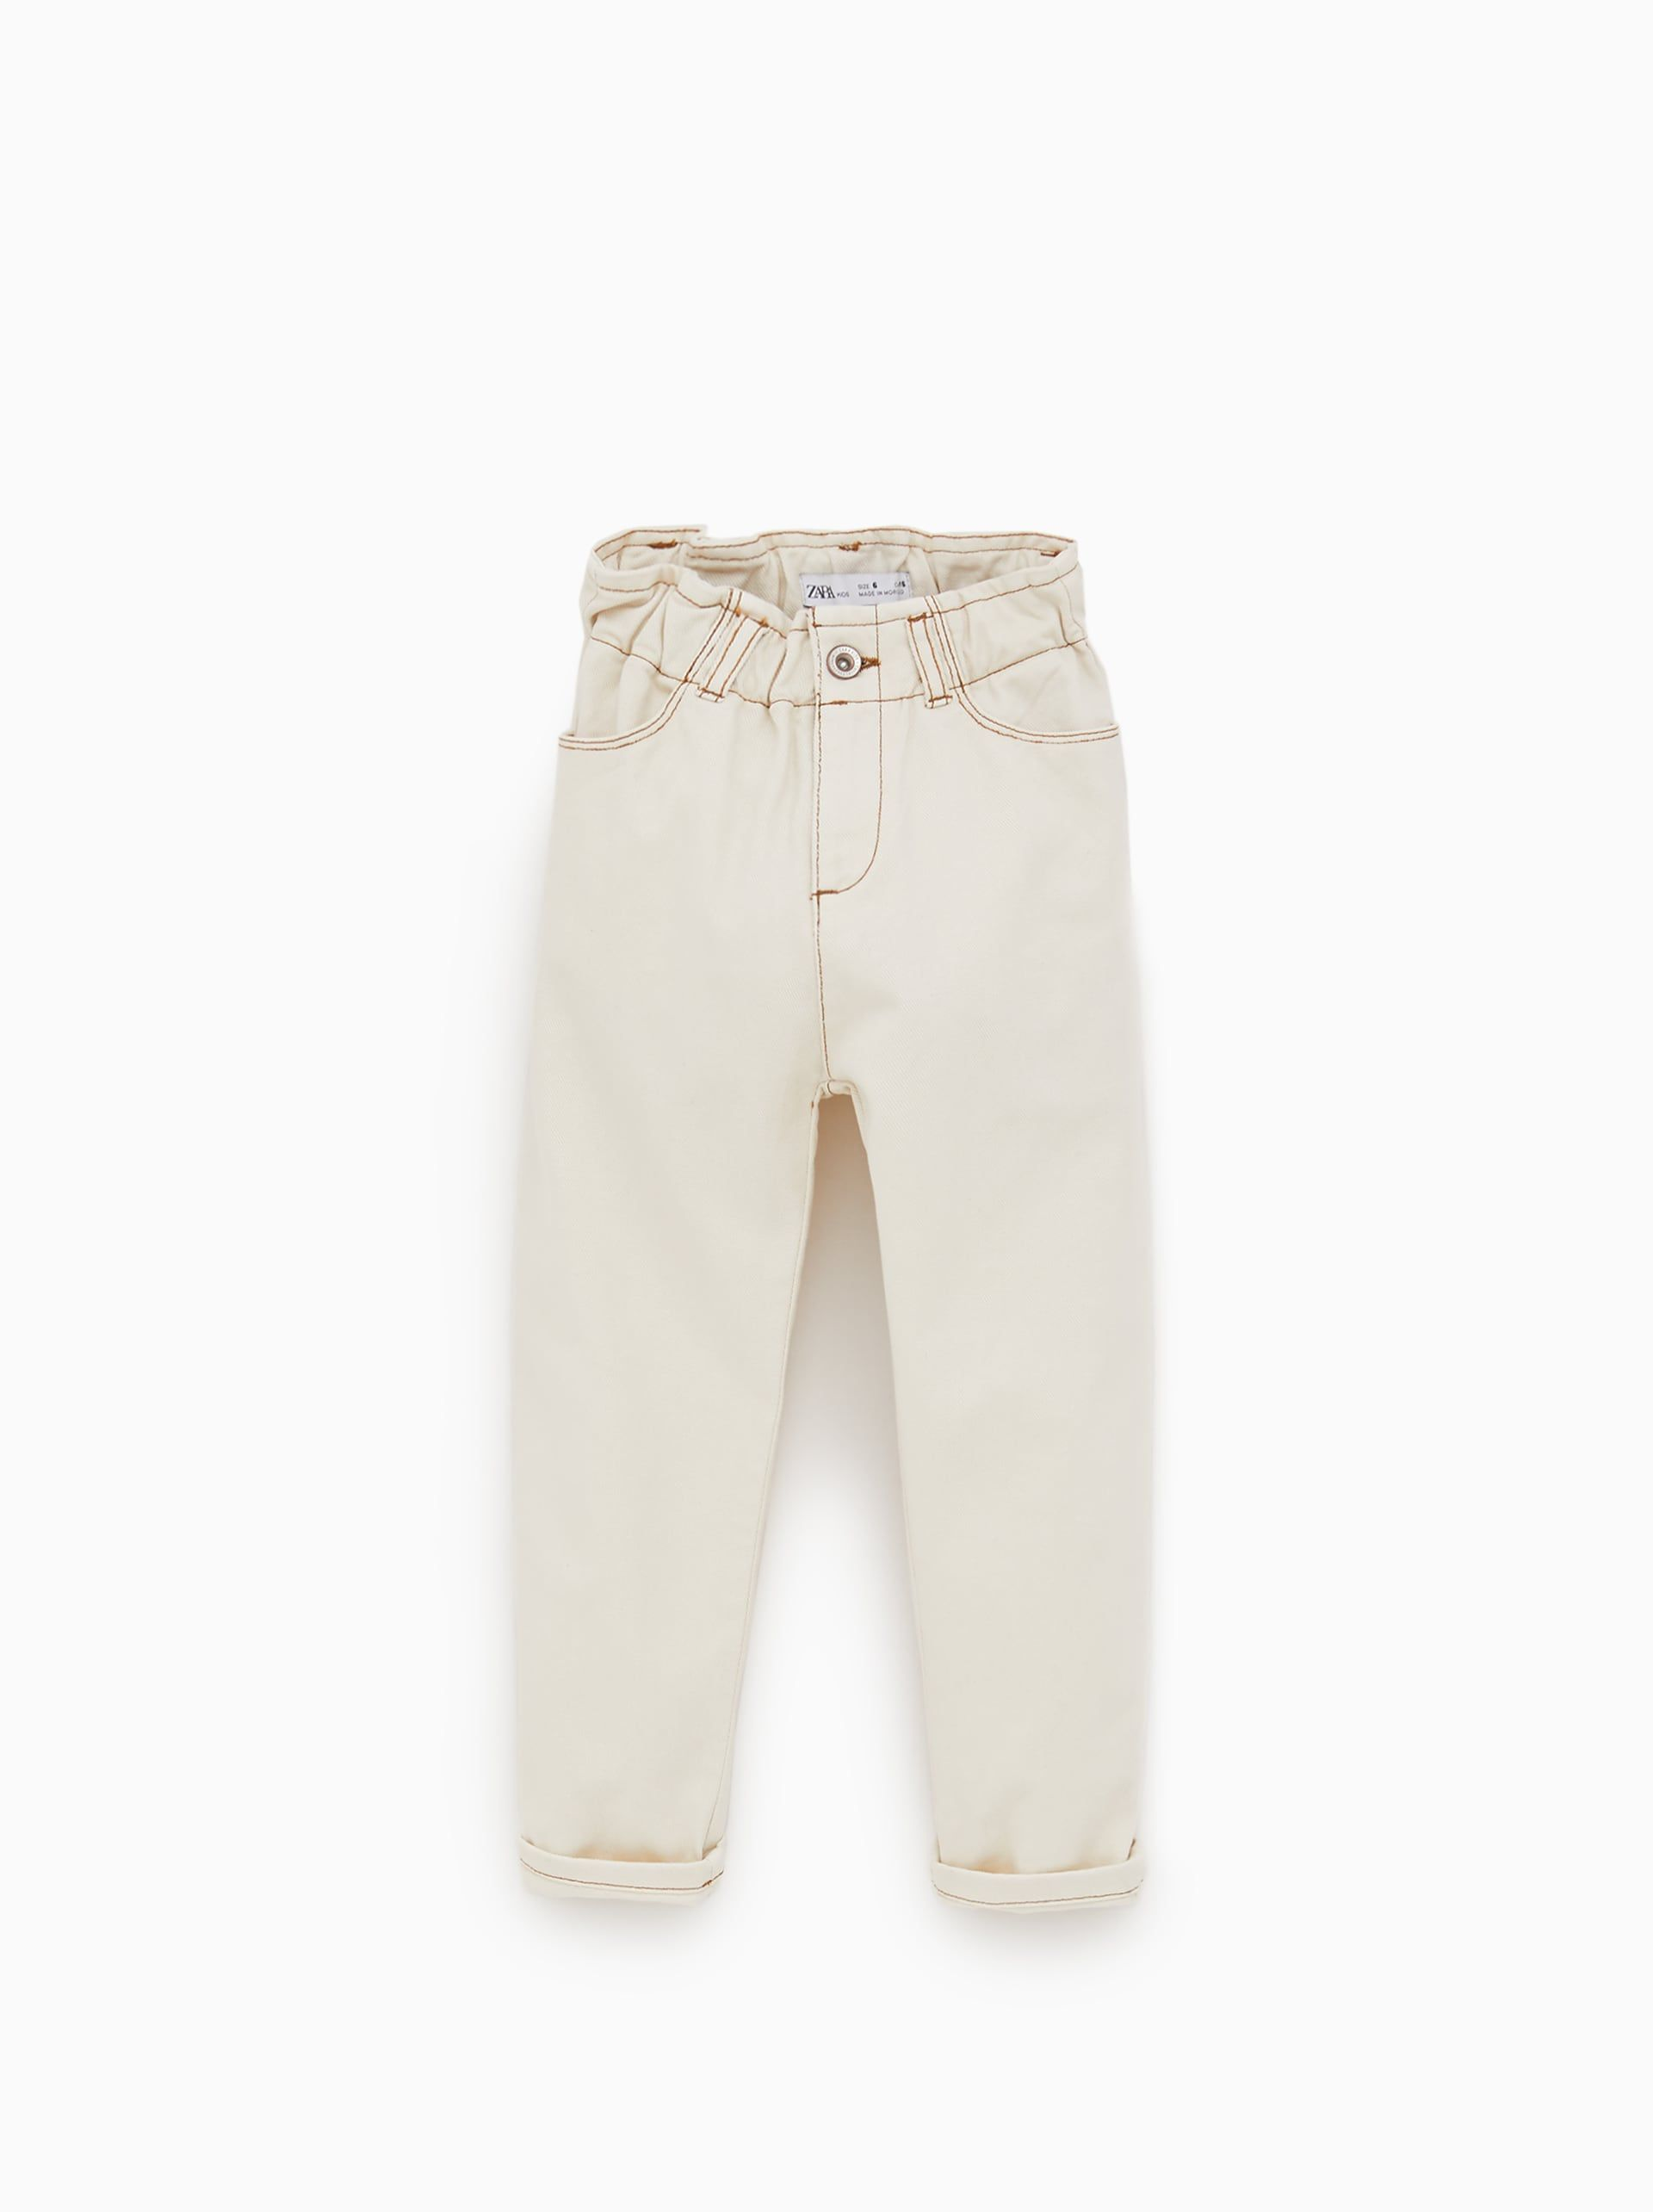 b88756e26e Patterned jeans with topstitching in 2019 | Kids ss19 | Patterned ...